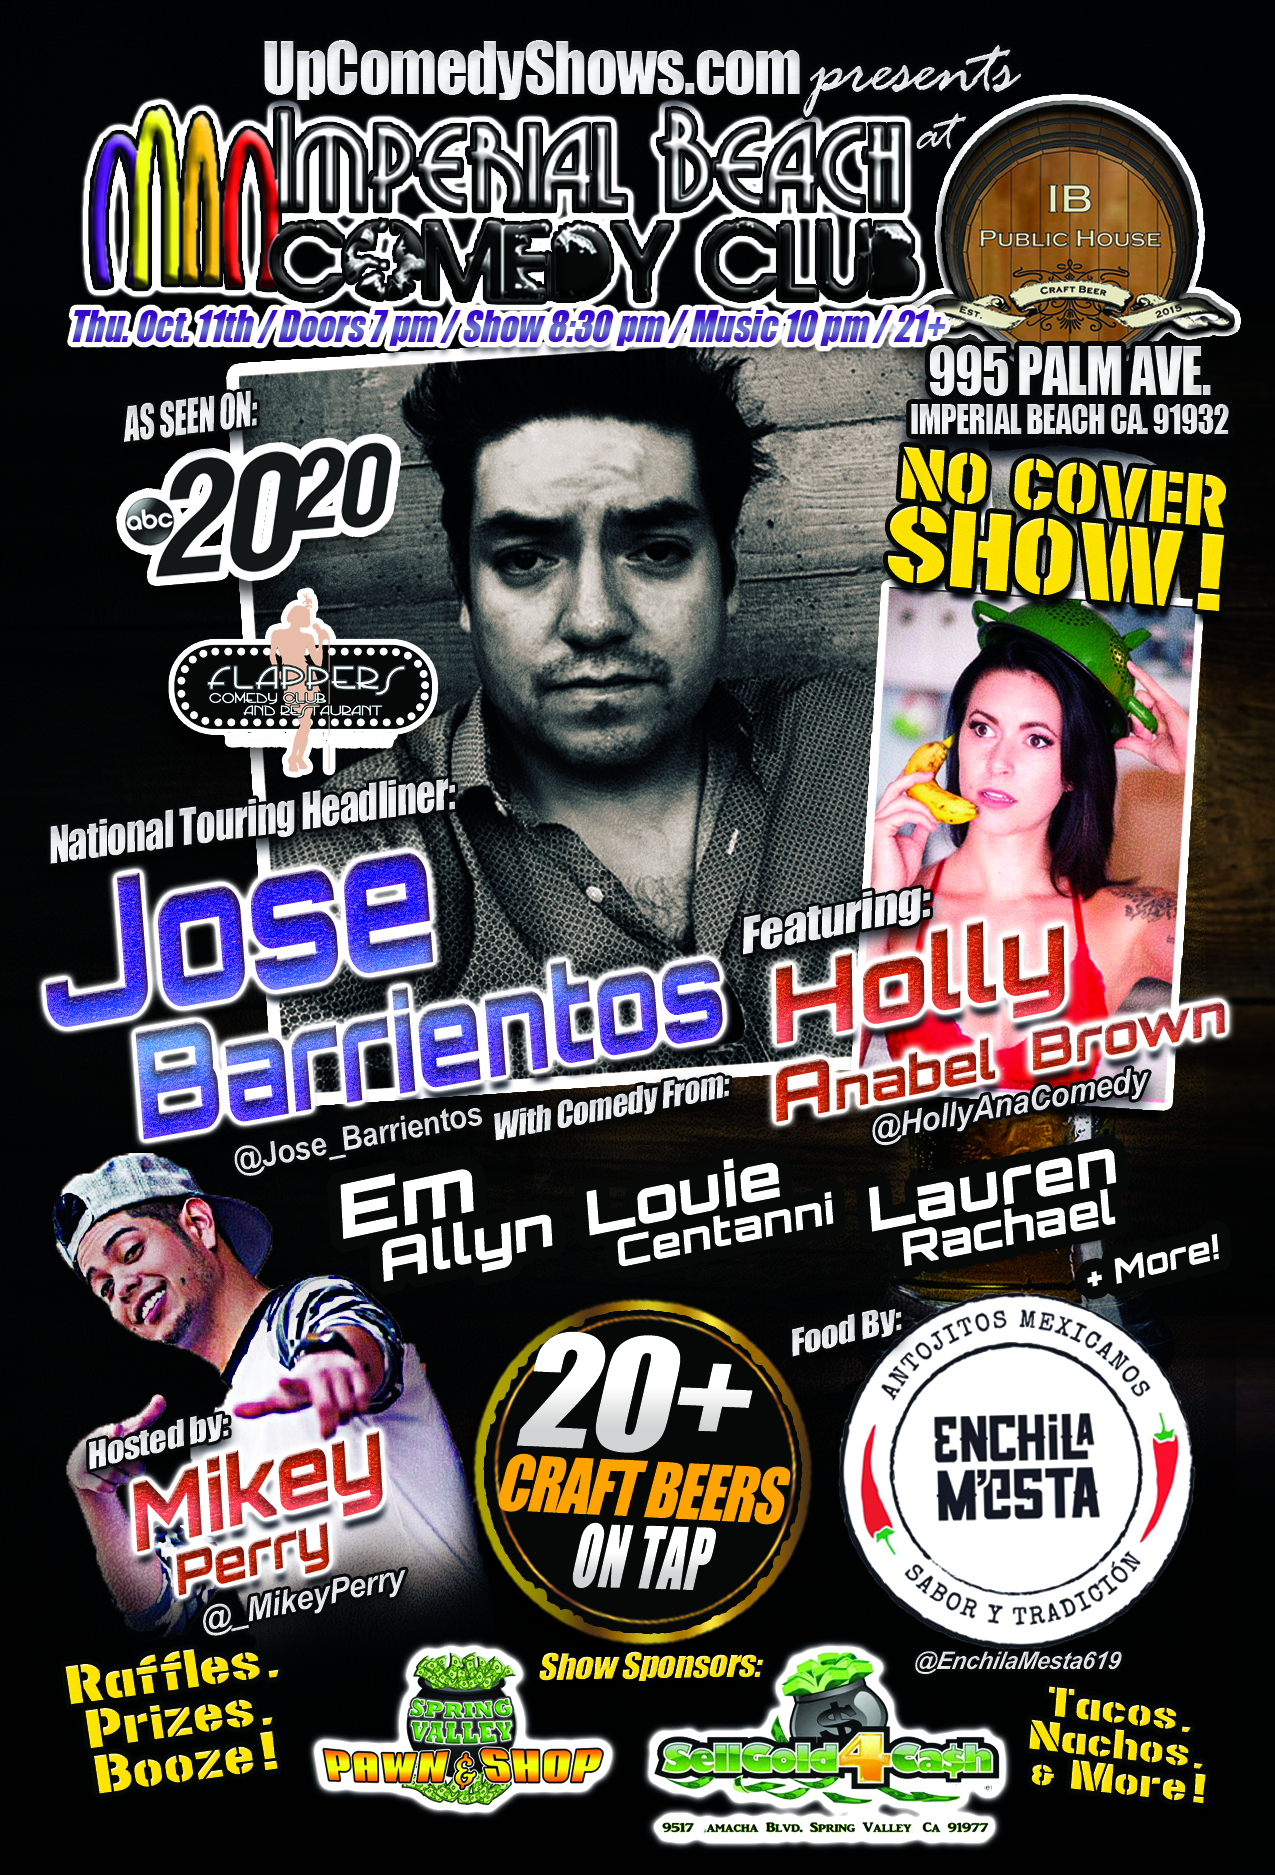 10.11.18 - IB Comedy Club - Jose Barrientos- General Poster 3.0.jpg